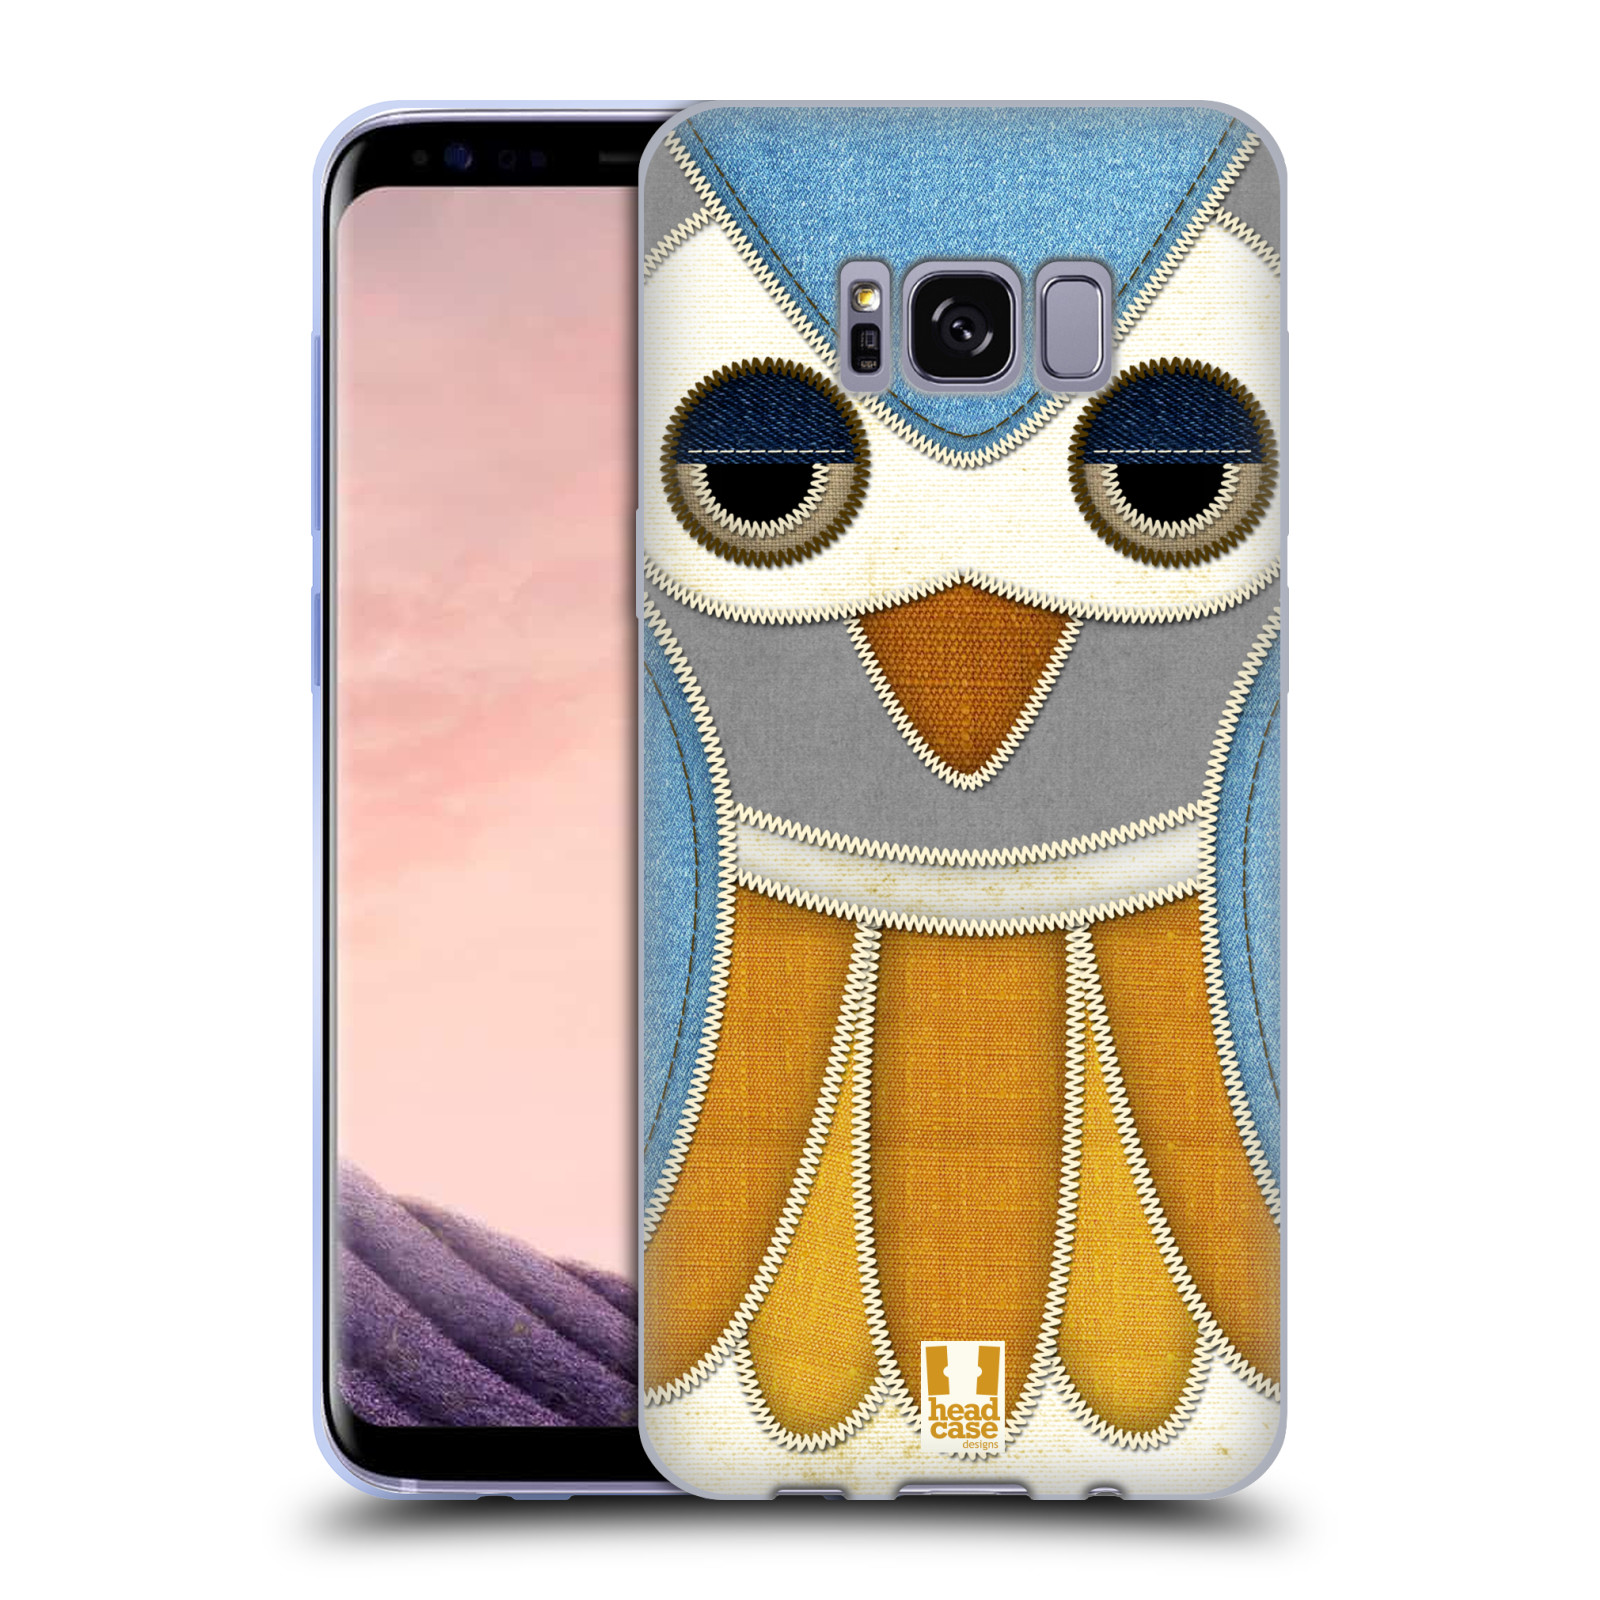 HEAD-CASE-DESIGNS-OWL-PATCHWORK-SOFT-GEL-CASE-FOR-SAMSUNG-GALAXY-S8